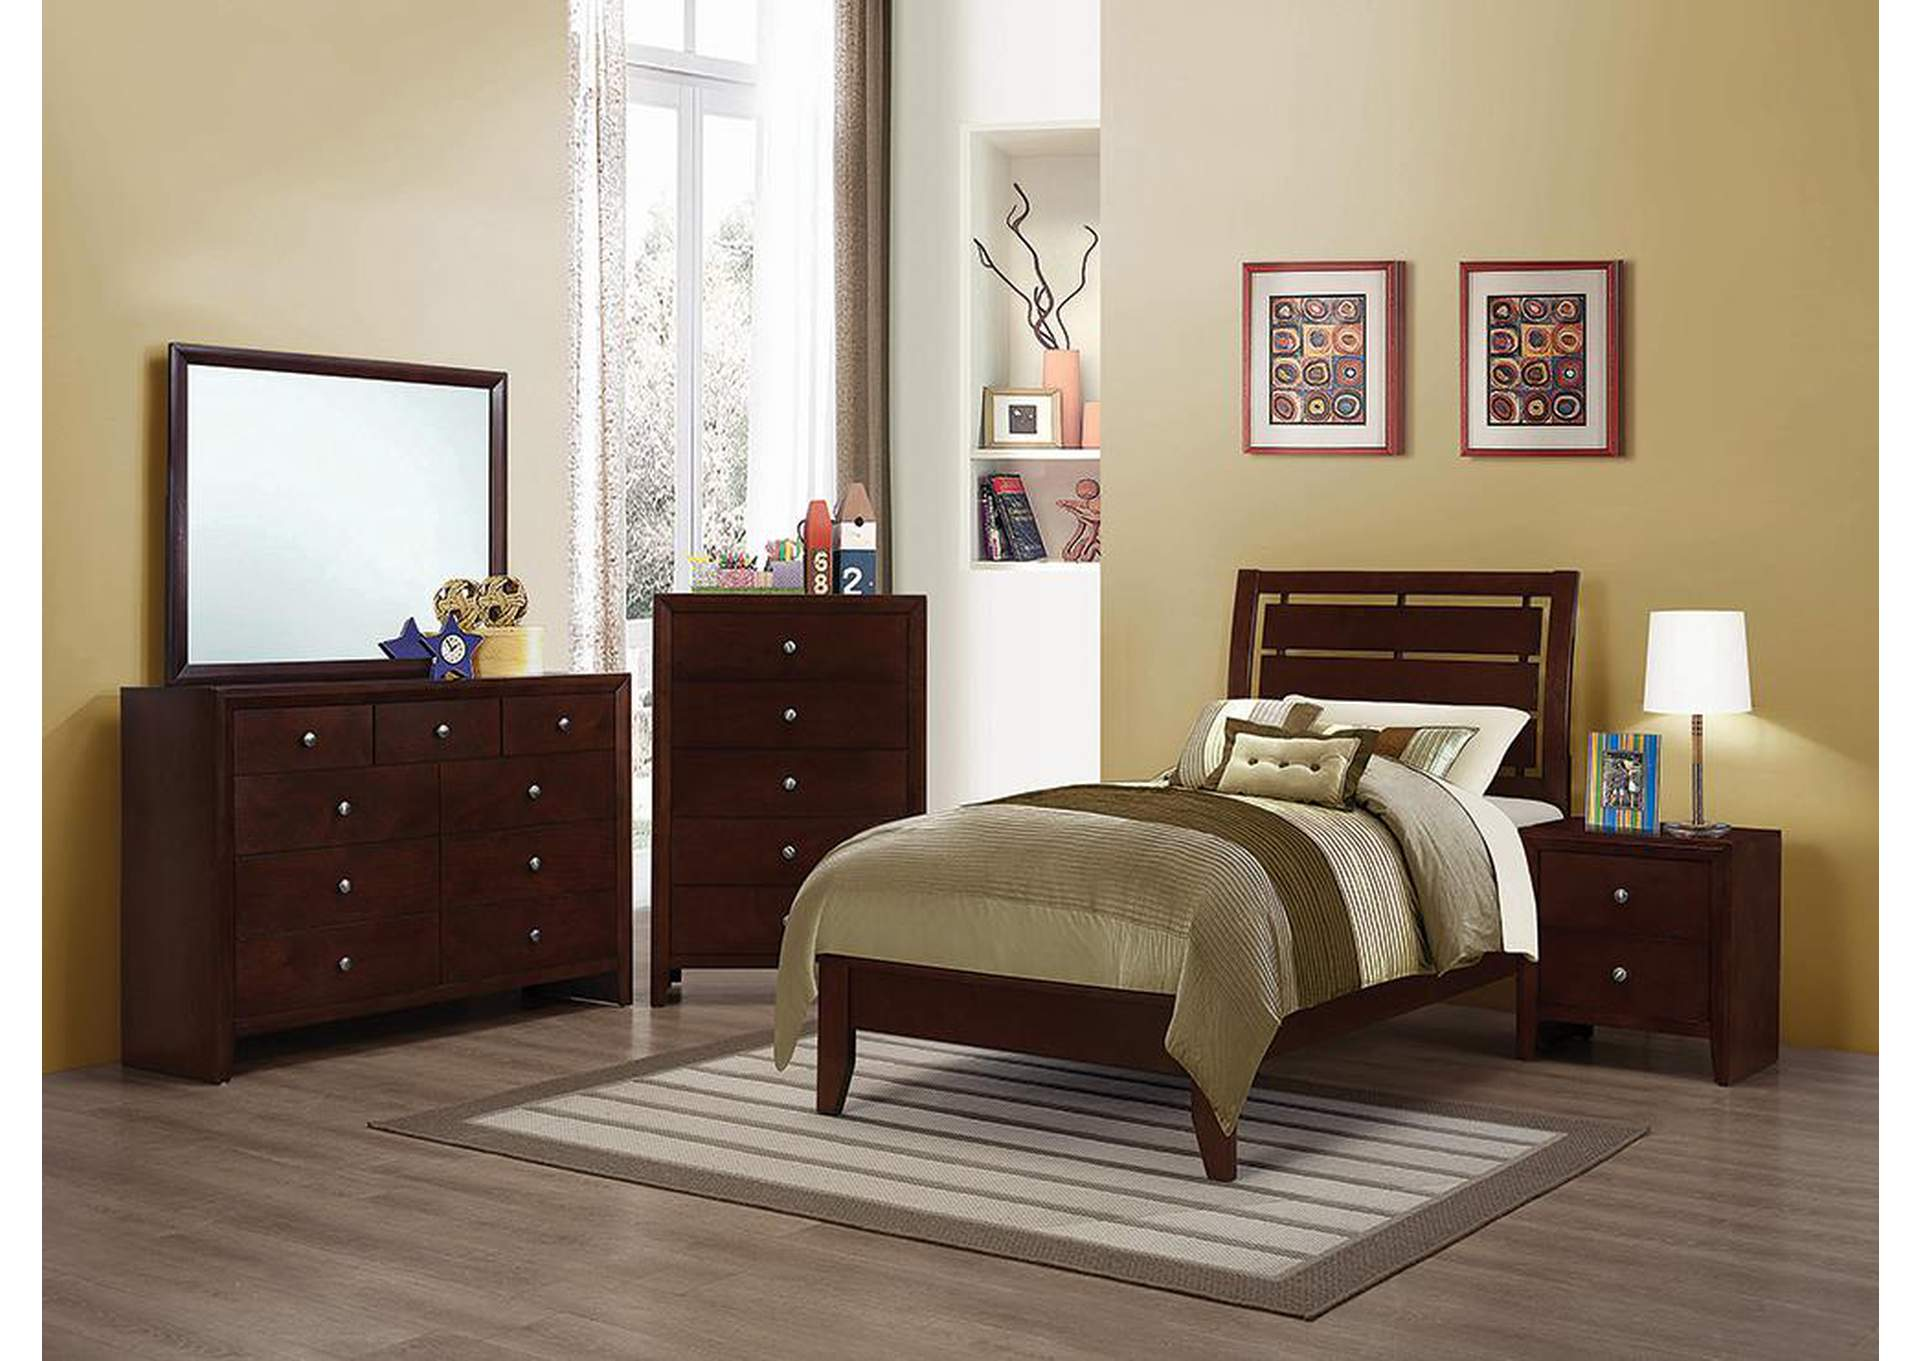 Serenity Merlot Full Bed,ABF Coaster Furniture